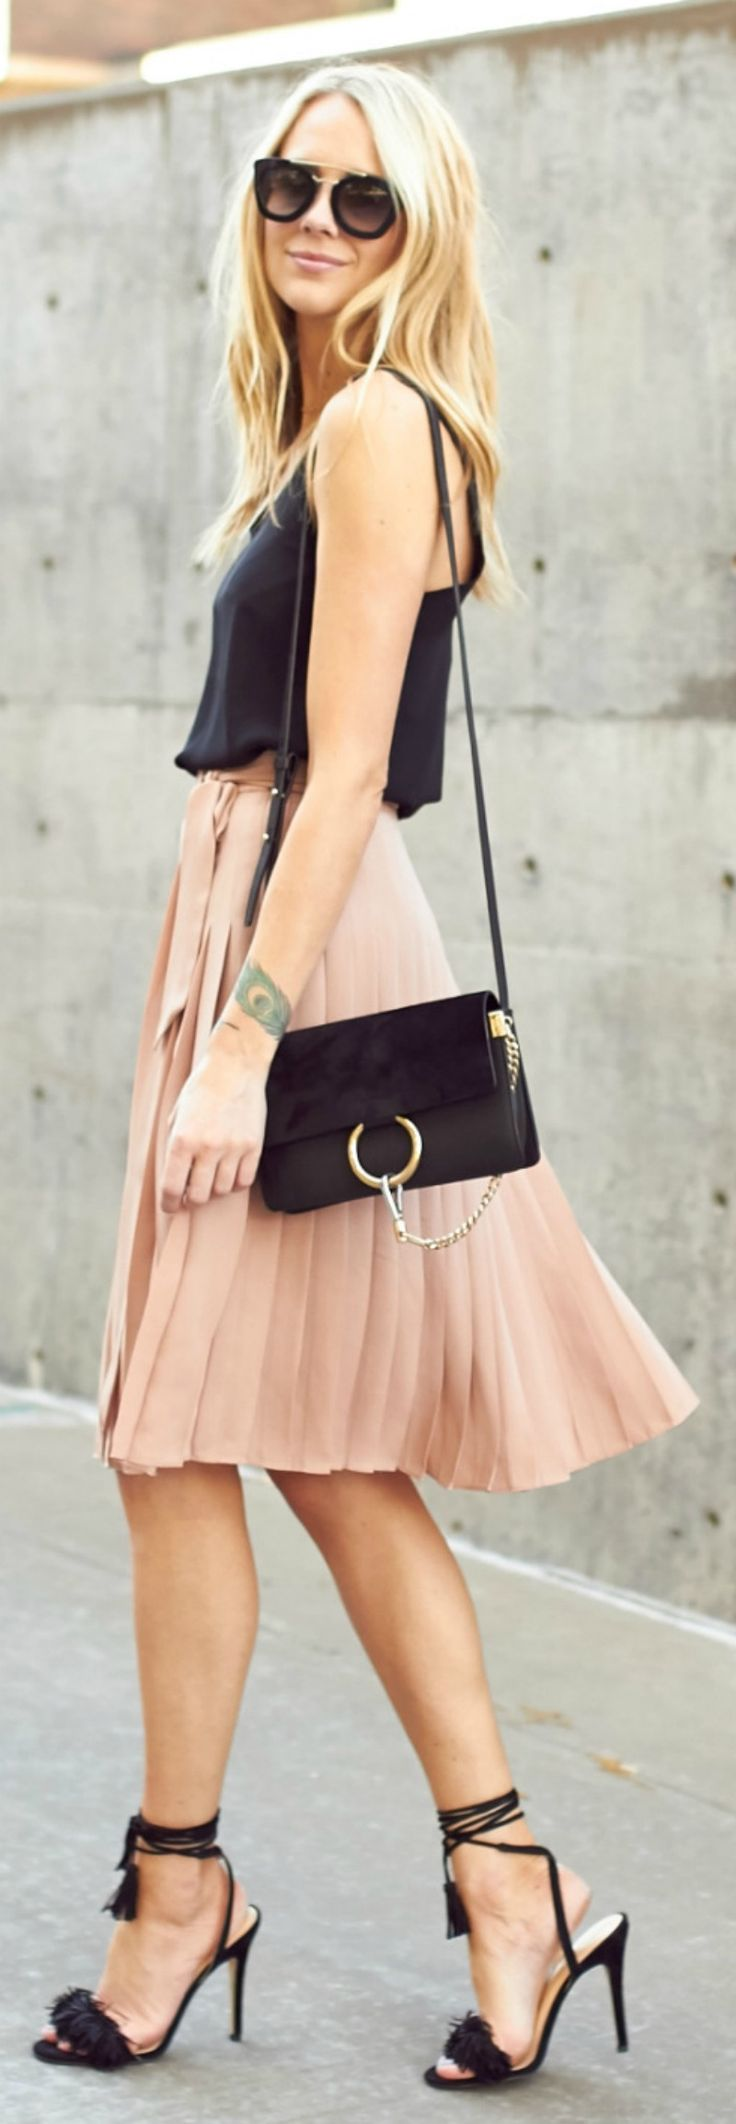 Summer style + salmon pink + pleated skirt + black vest + perfect look + hitting…